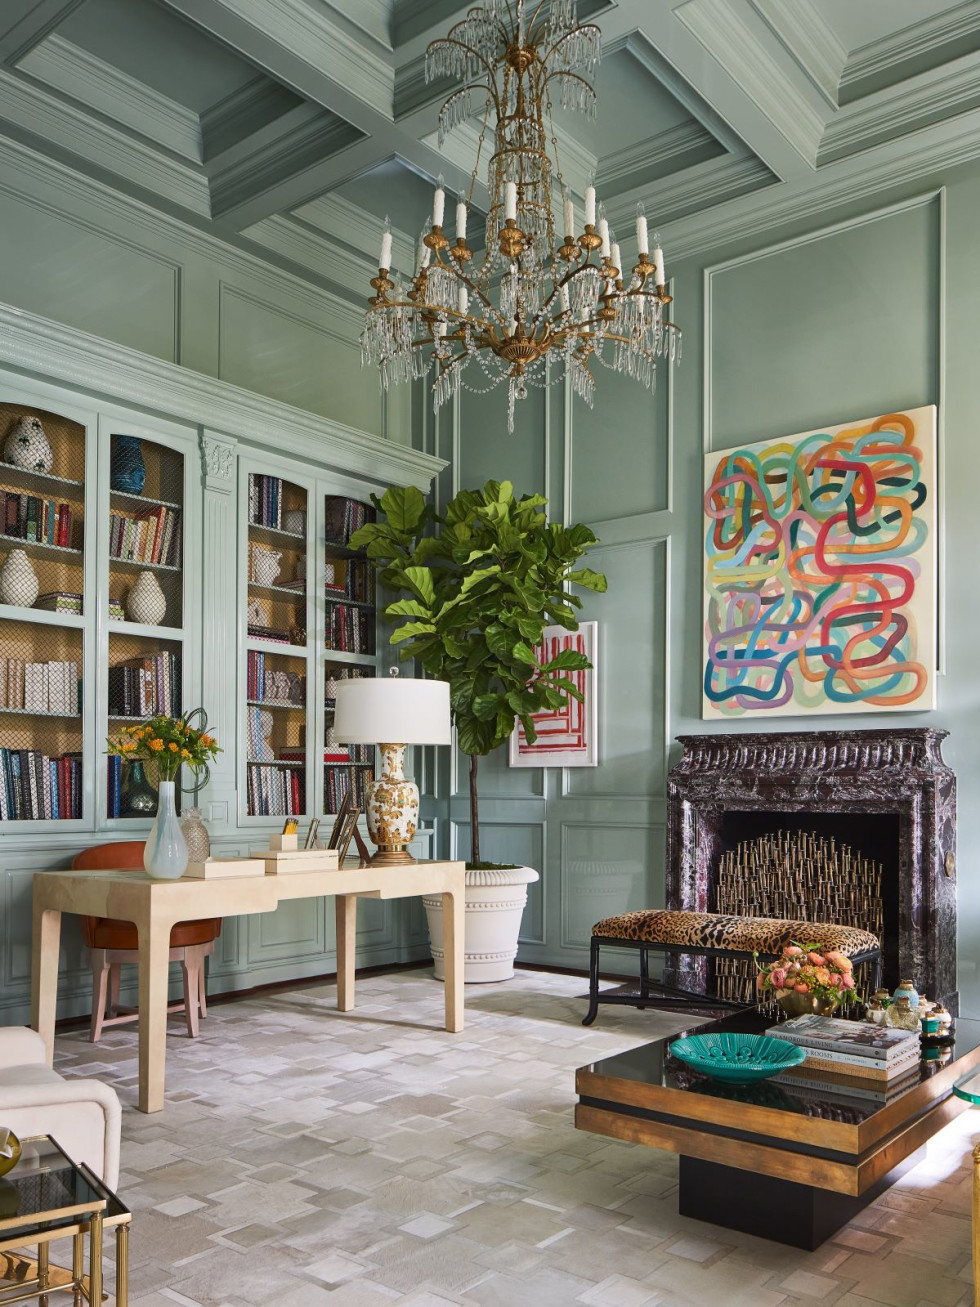 Kips Bay Decorator Show House, Old Preston Hollow